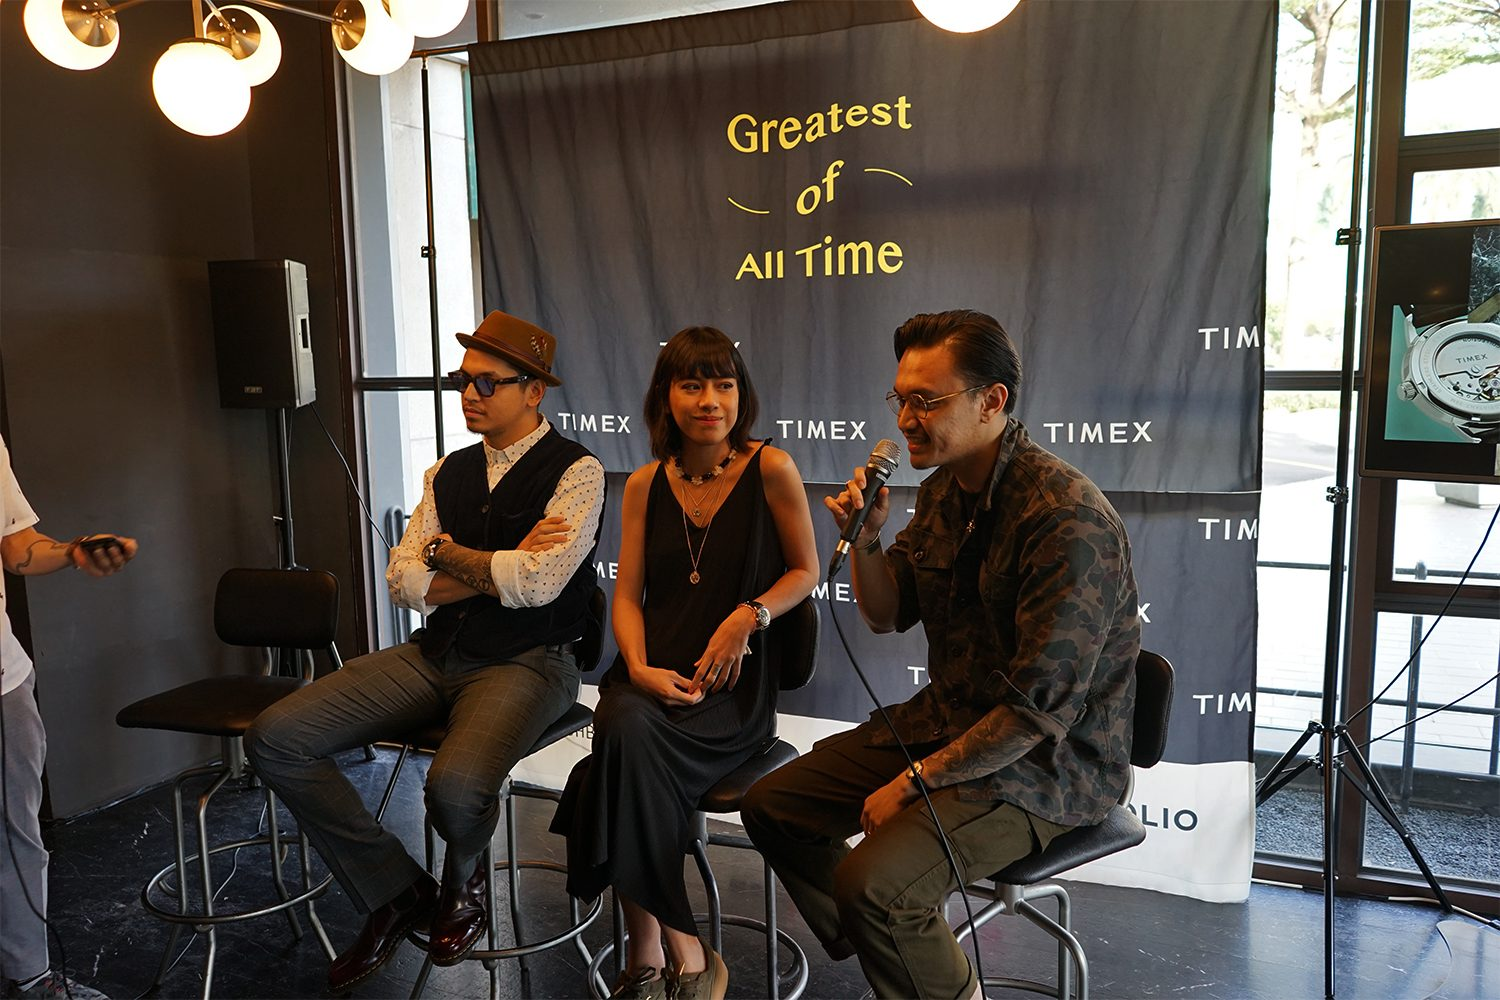 TIMEX INDONESIA GREATEST OF ALL TIME LAUNCHING EVENT 1